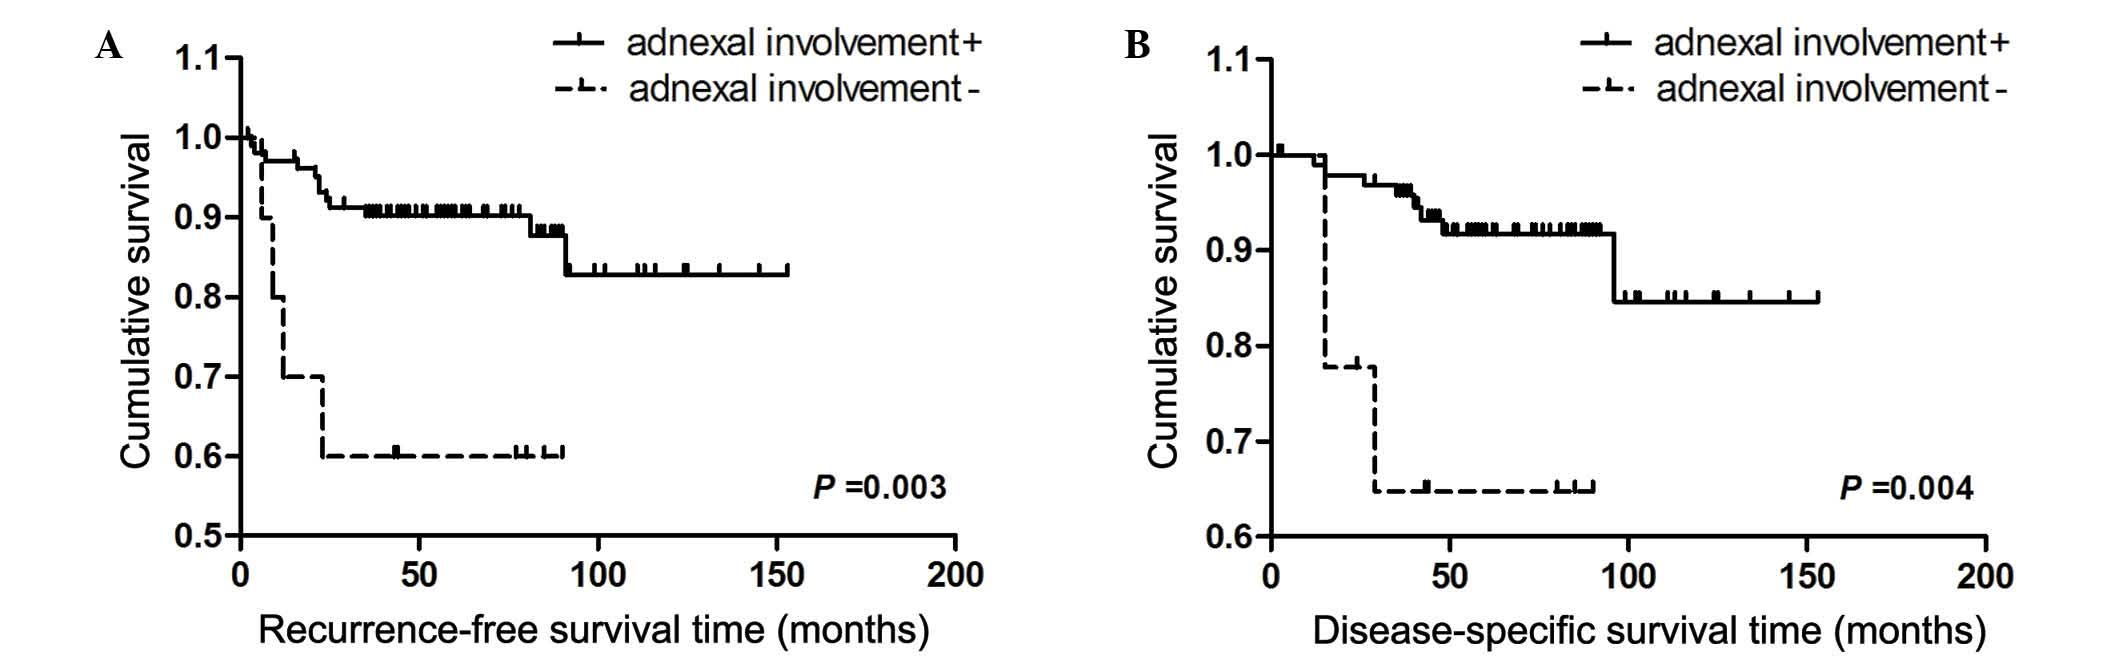 endometrial cancer recurrence rates)